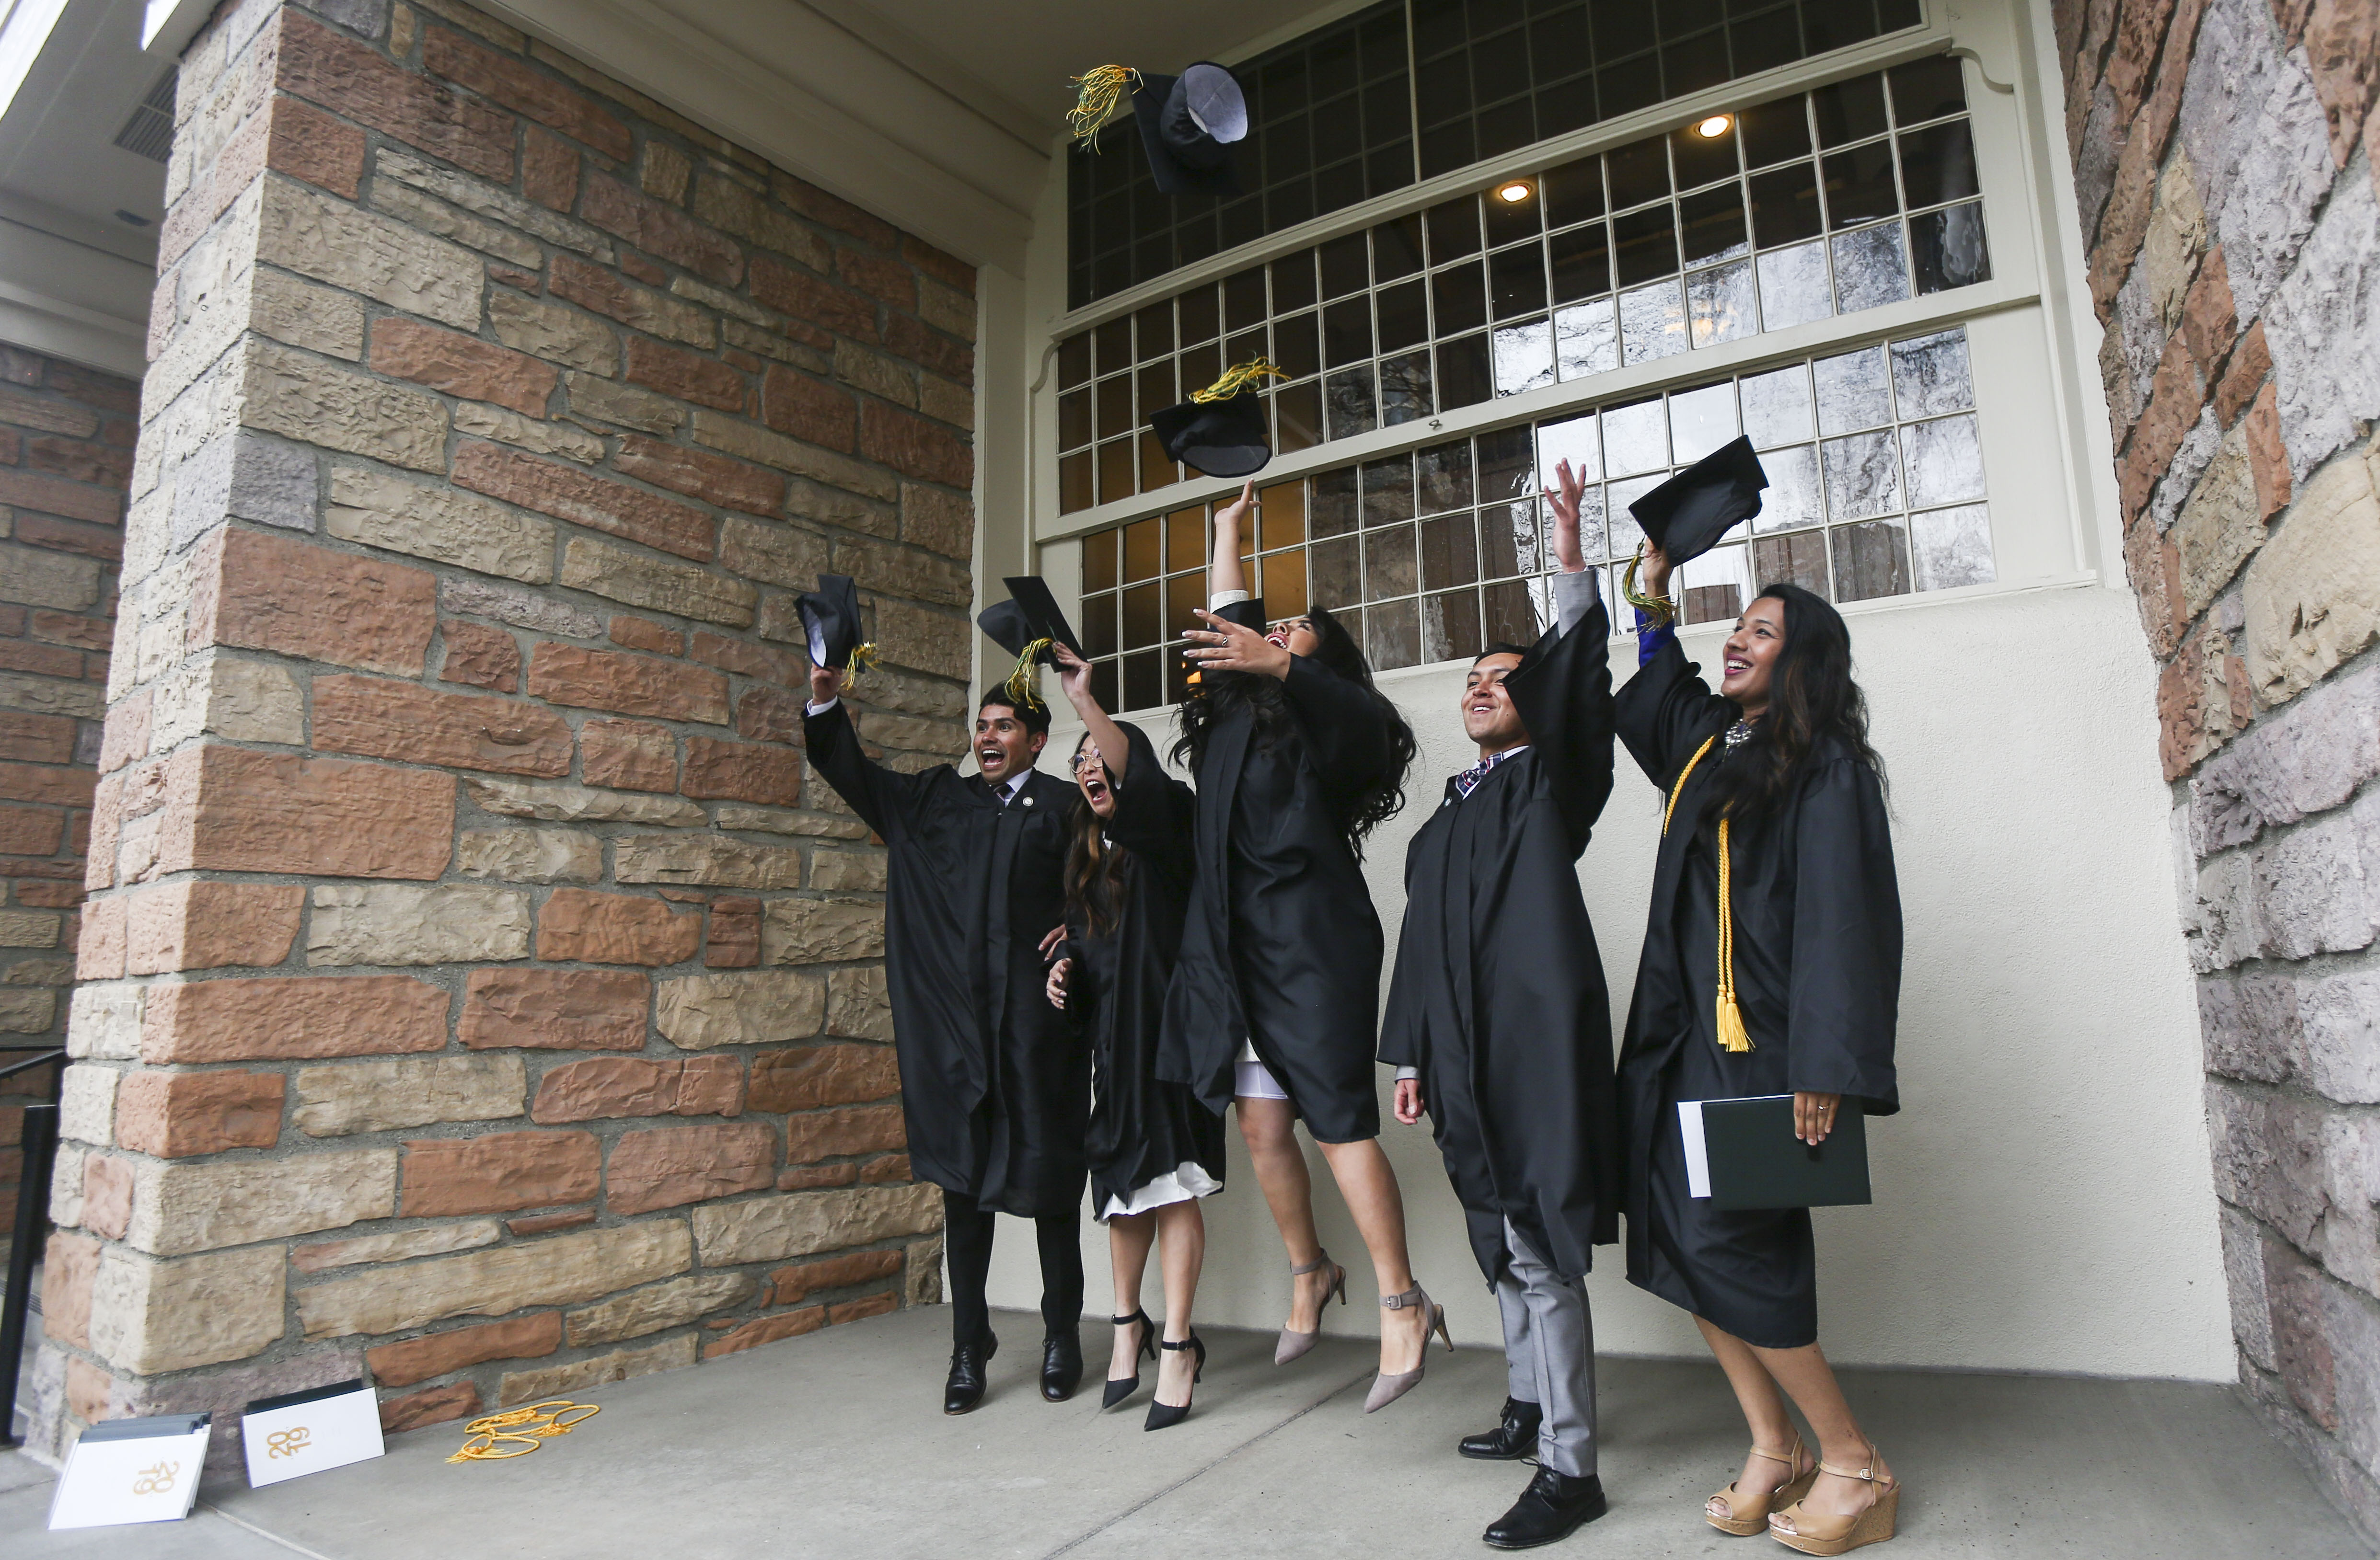 Students from the LDS business college celebrate their graduation at Tabernacle at Temple Square after their commencement ceremony in Salt Lake City on Friday, April 12, 2019.